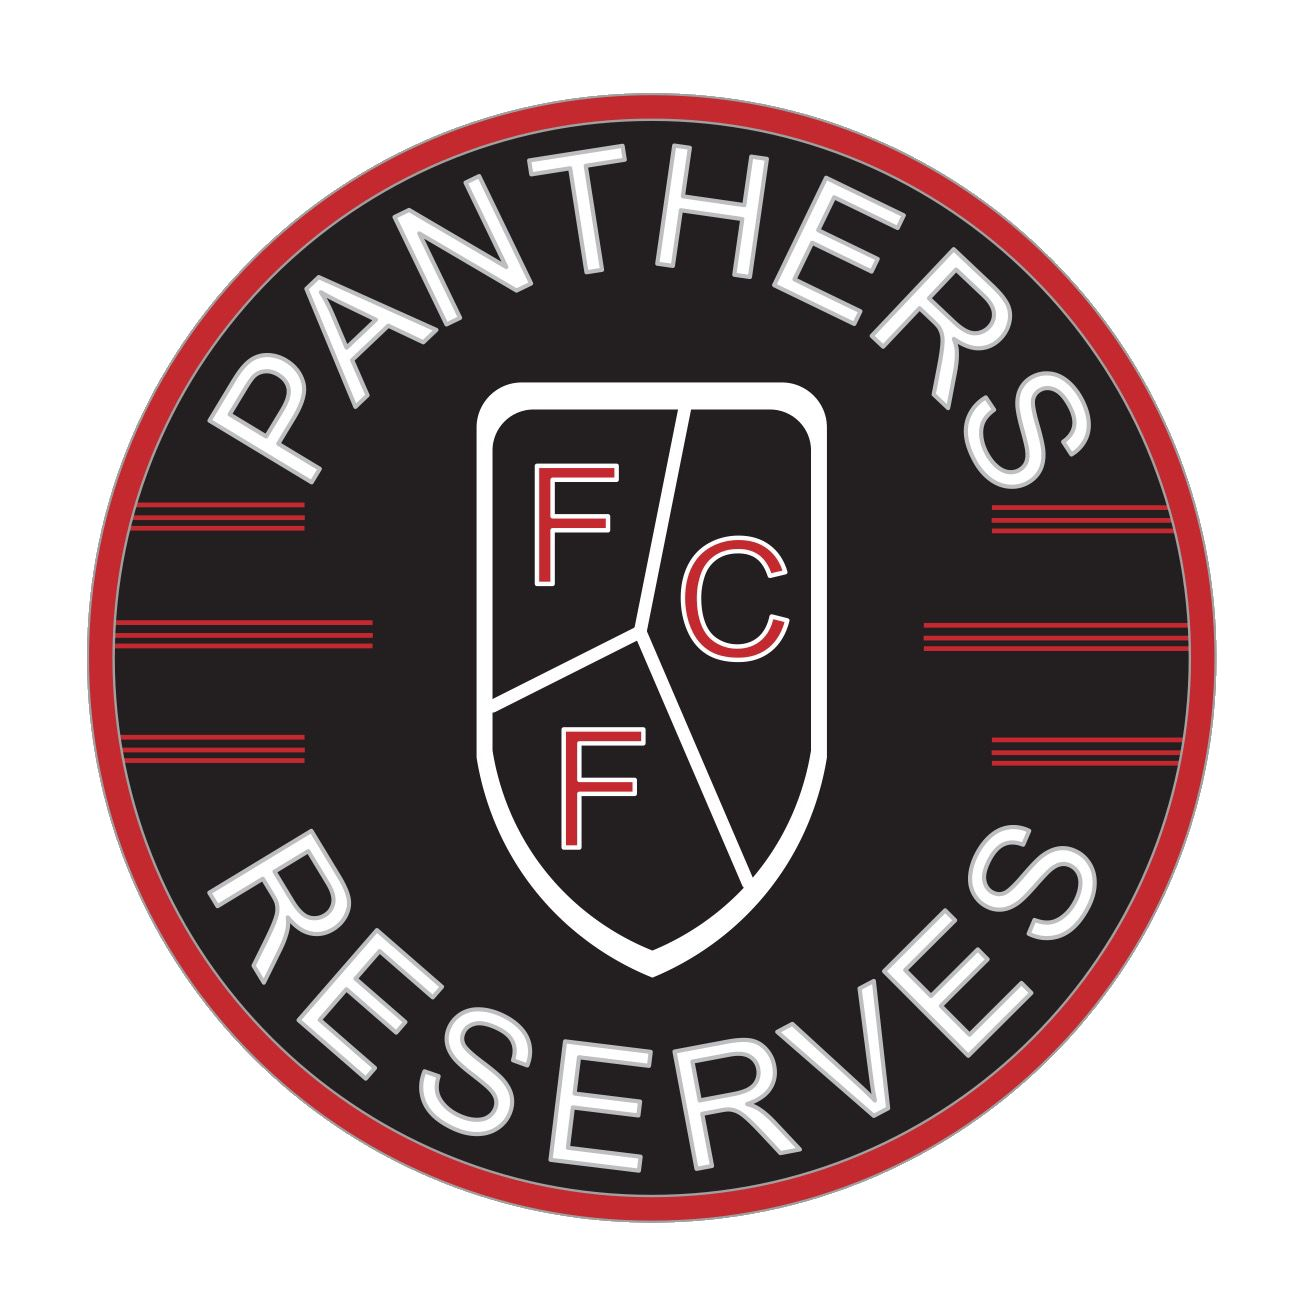 FFC Panthers Reserves